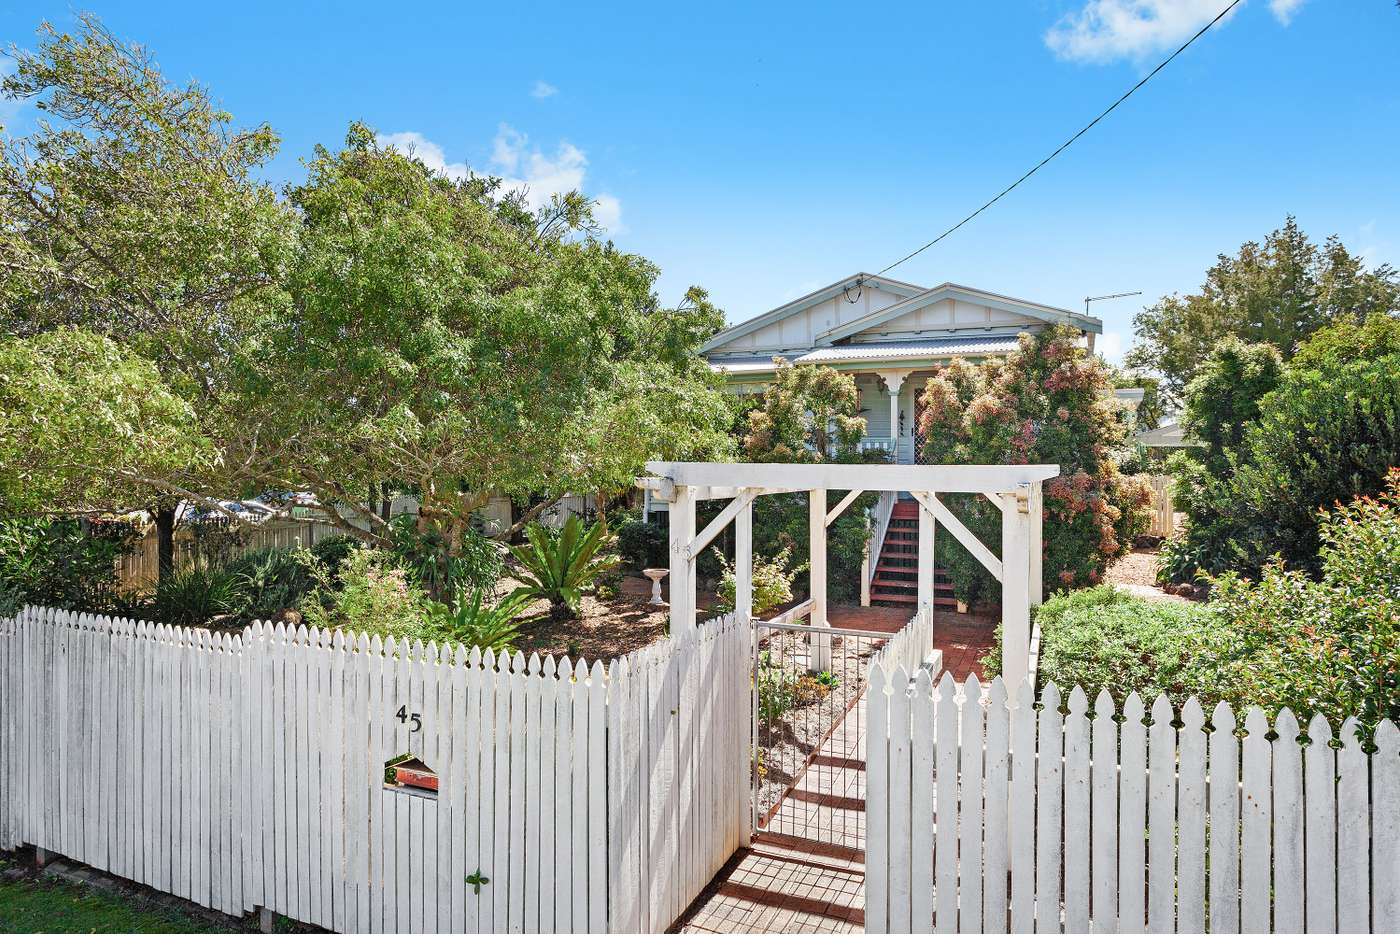 Main view of Homely house listing, 45 Ipswich St, East Toowoomba QLD 4350